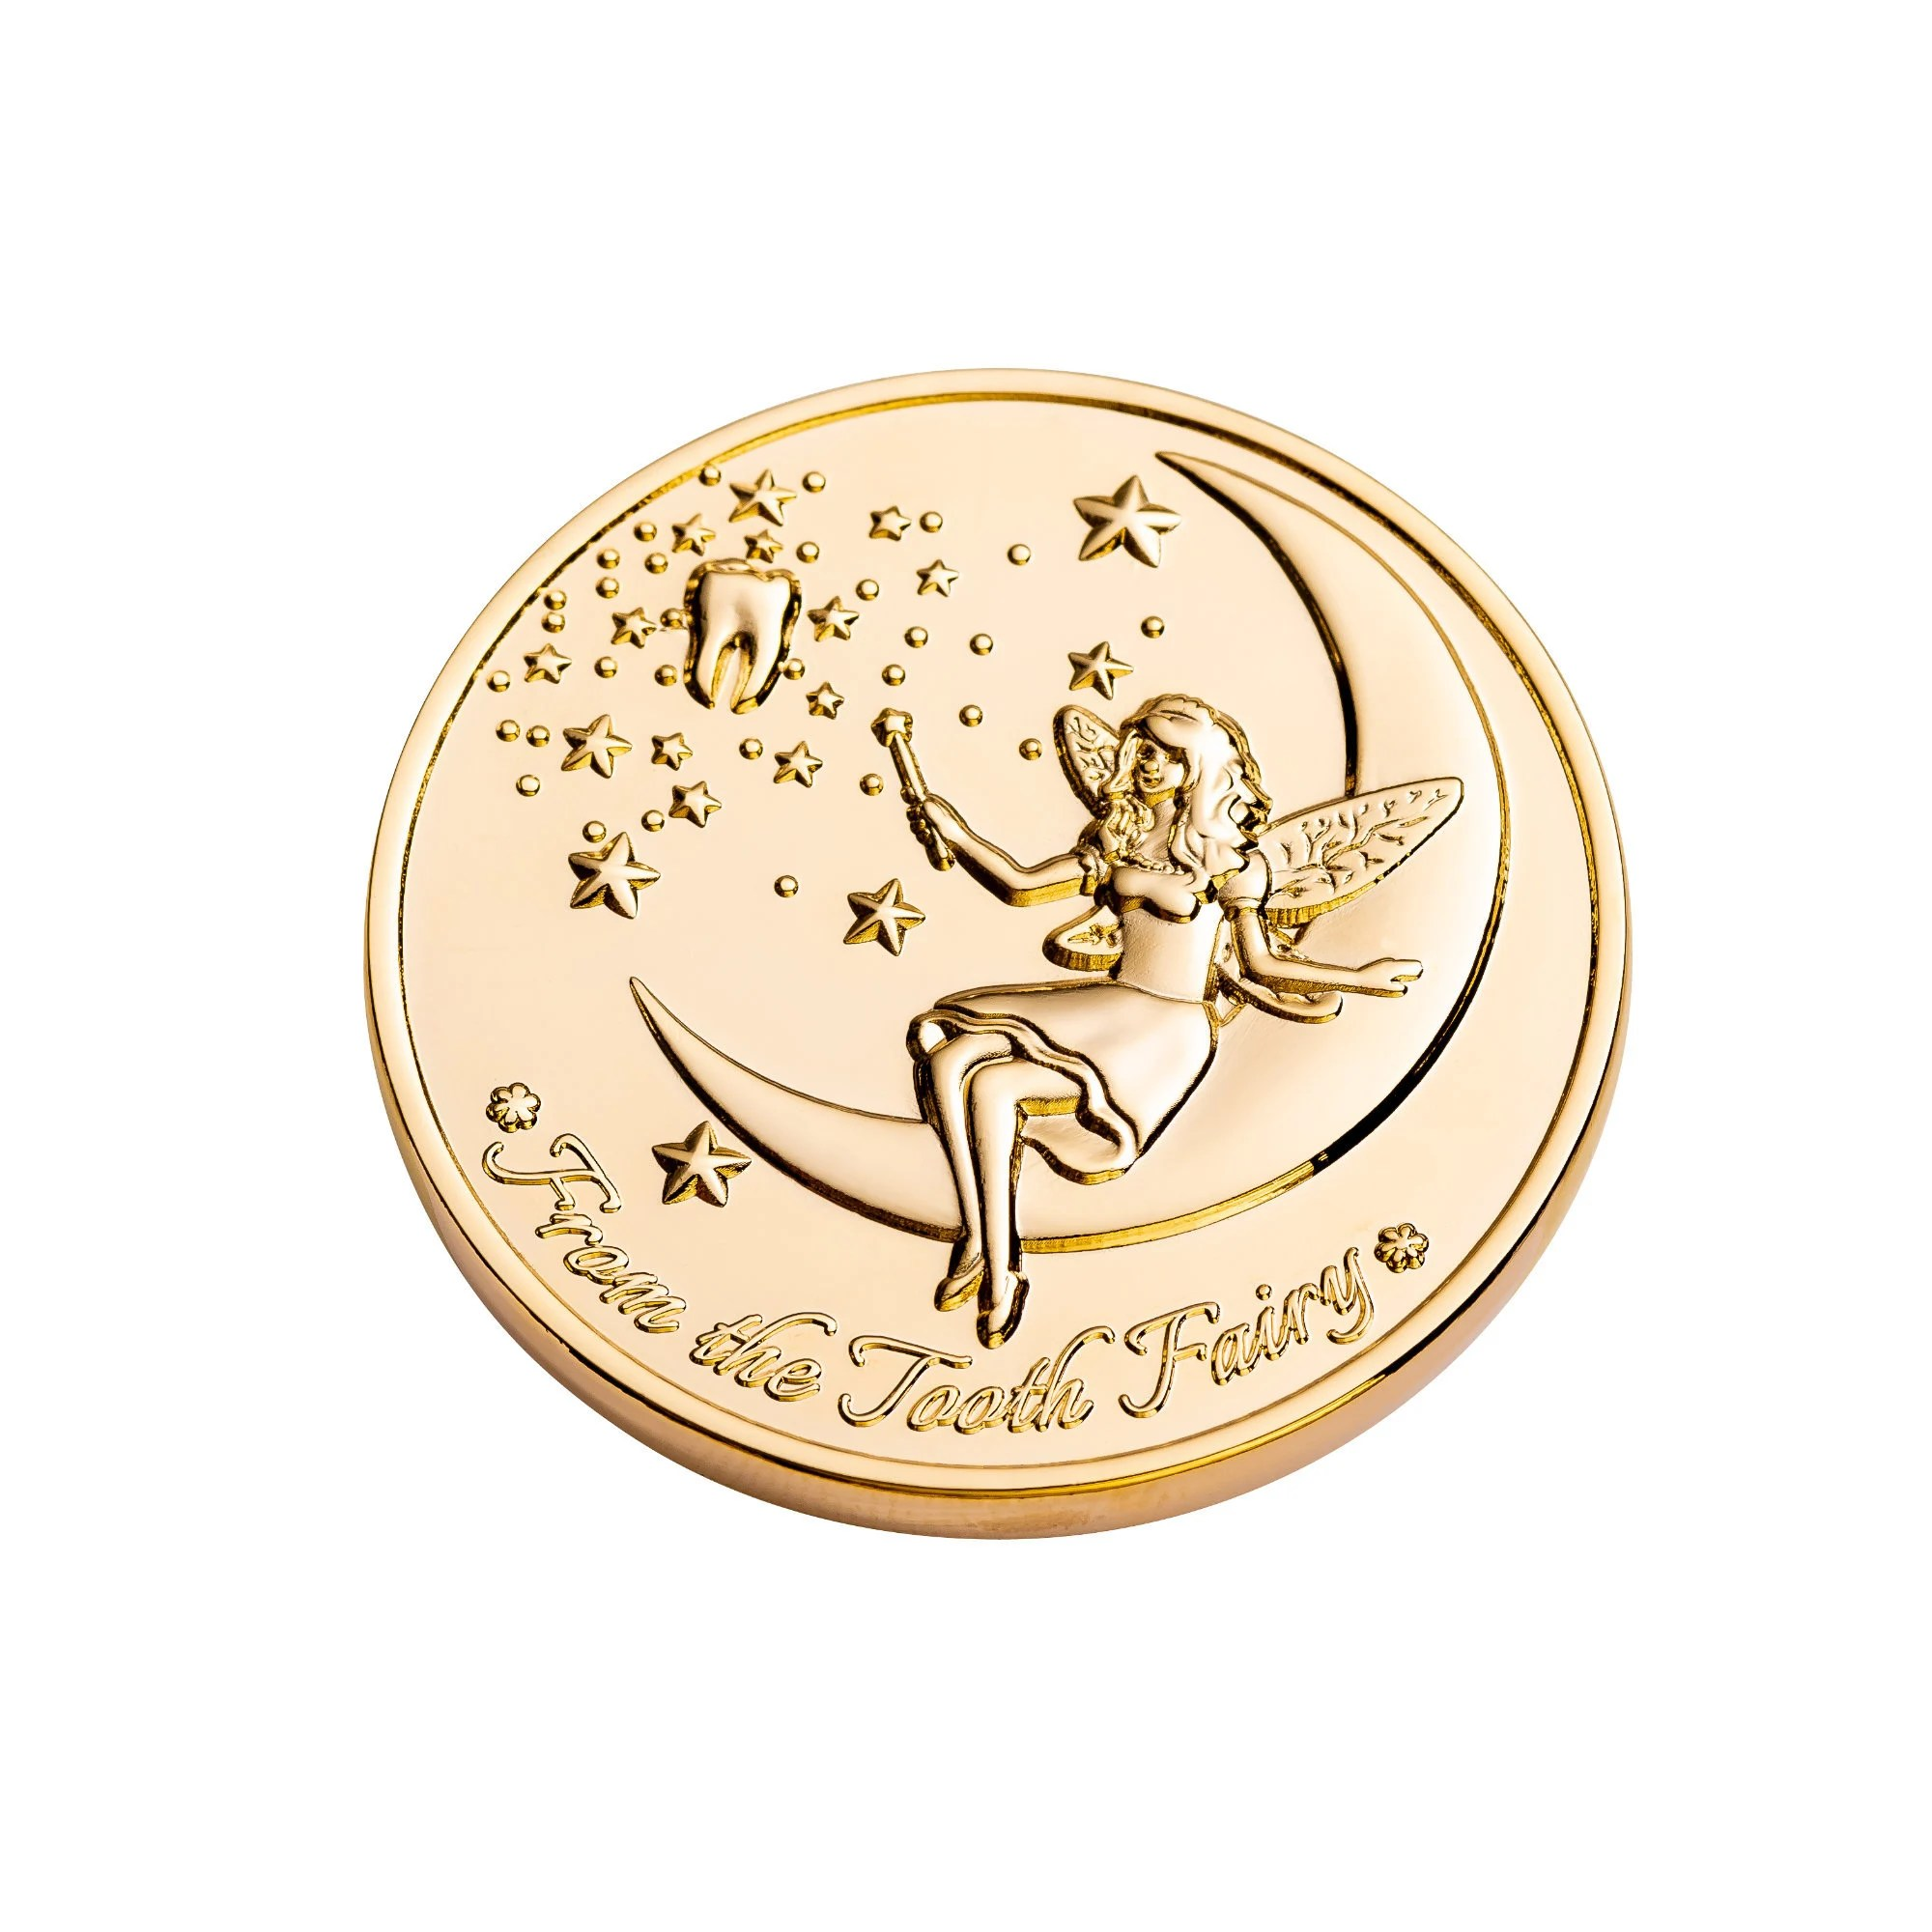 Tooth Fairy Coins Designer Set 1 goldplated image 3